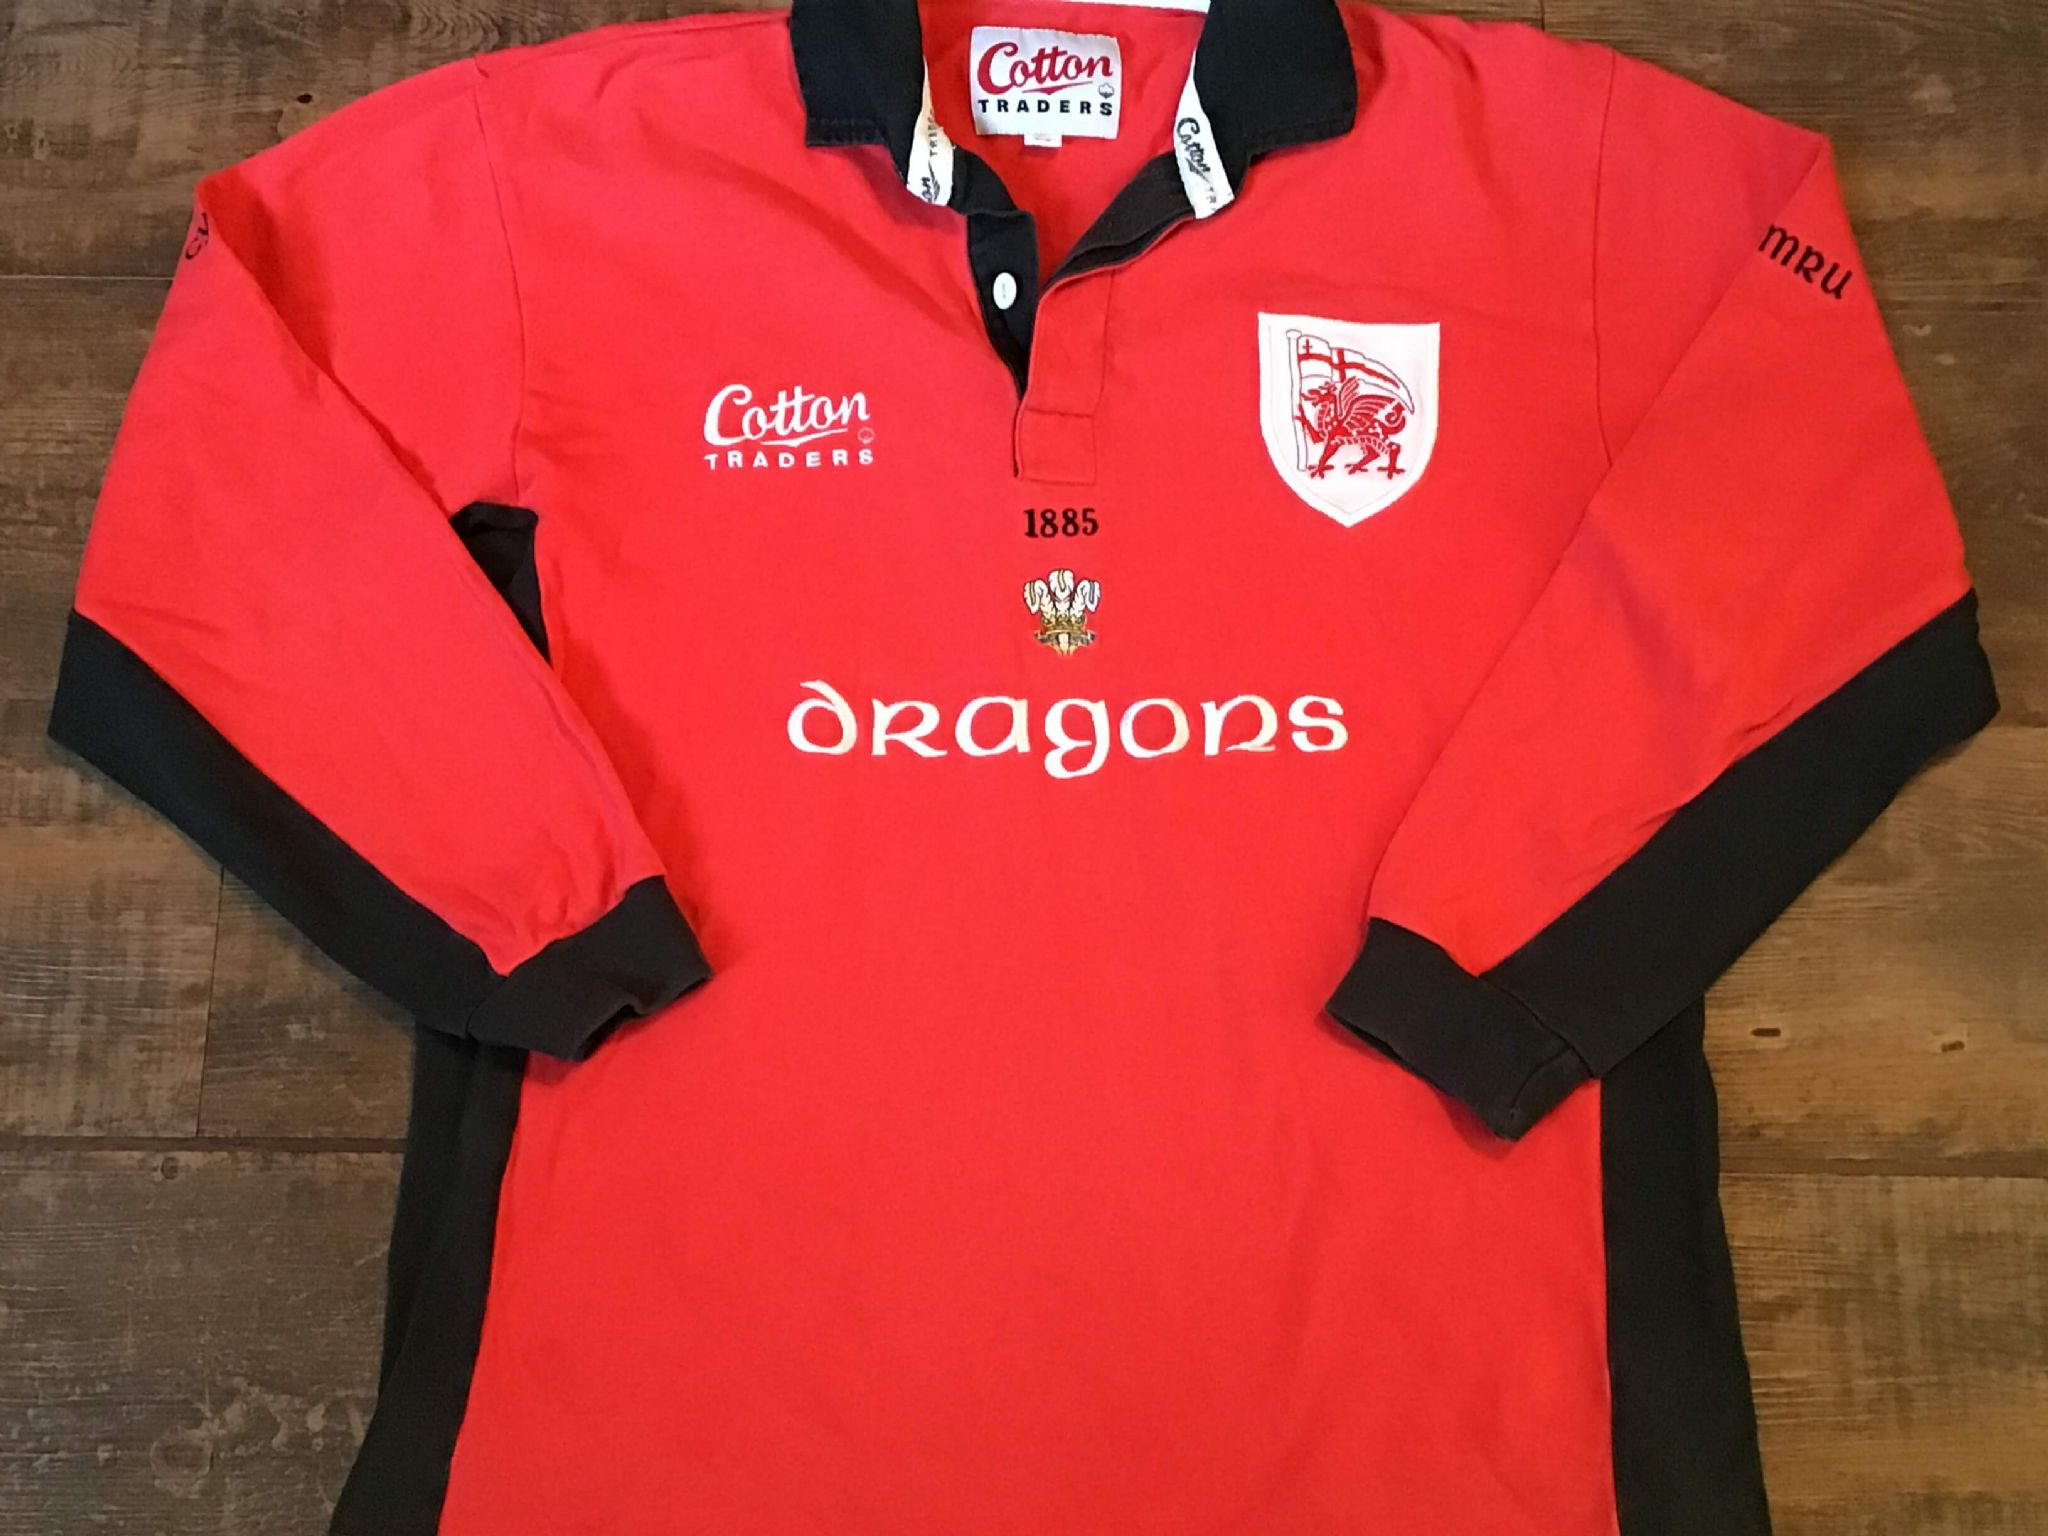 4a9b58d6e33 Cotton Traders Wales Rugby Shirts – EDGE Engineering and Consulting ...